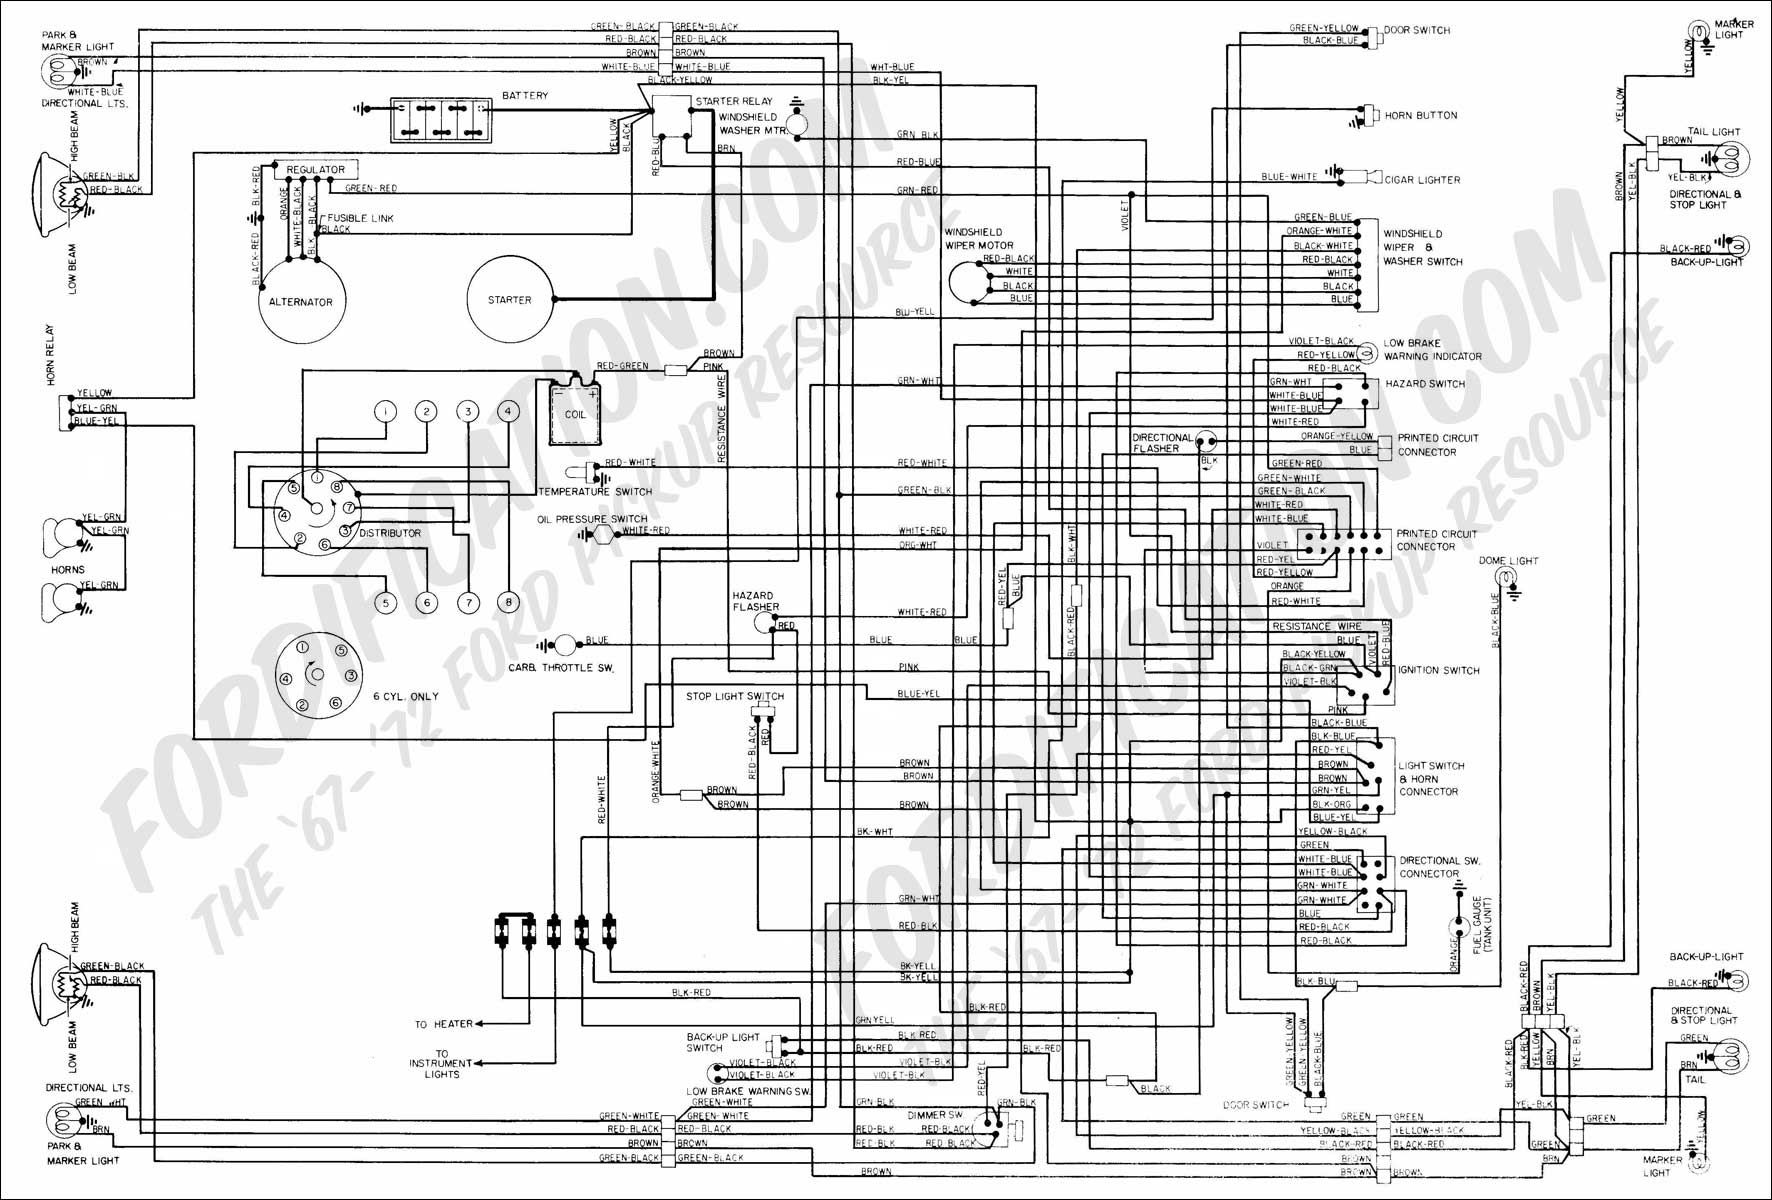 hight resolution of 1977 f150 wiring diagram wiring diagram operations 1977 ford f150 starter solenoid wiring diagram 1977 f150 wiring diagram